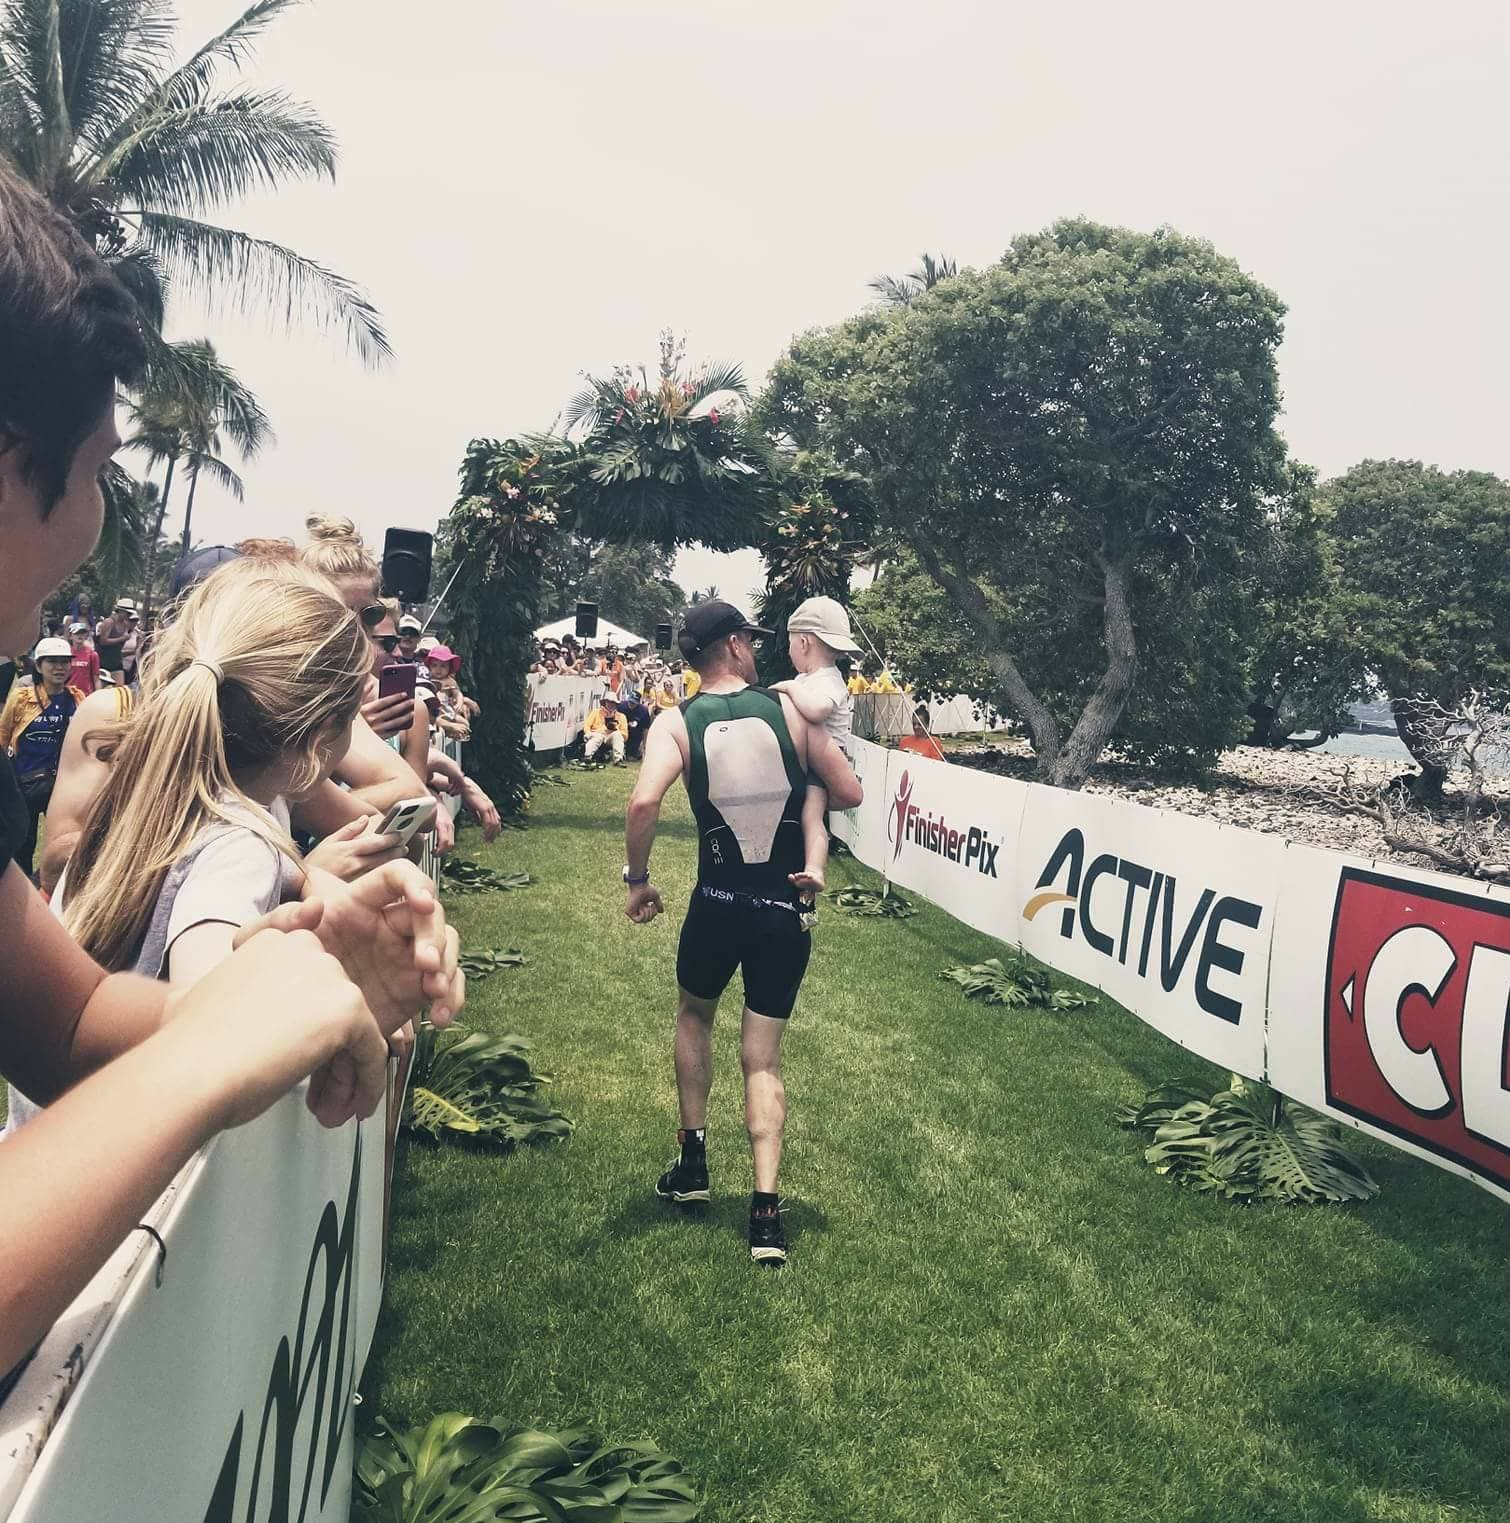 Richard and Lachlan crossing the finish like at Hawaii 70.3